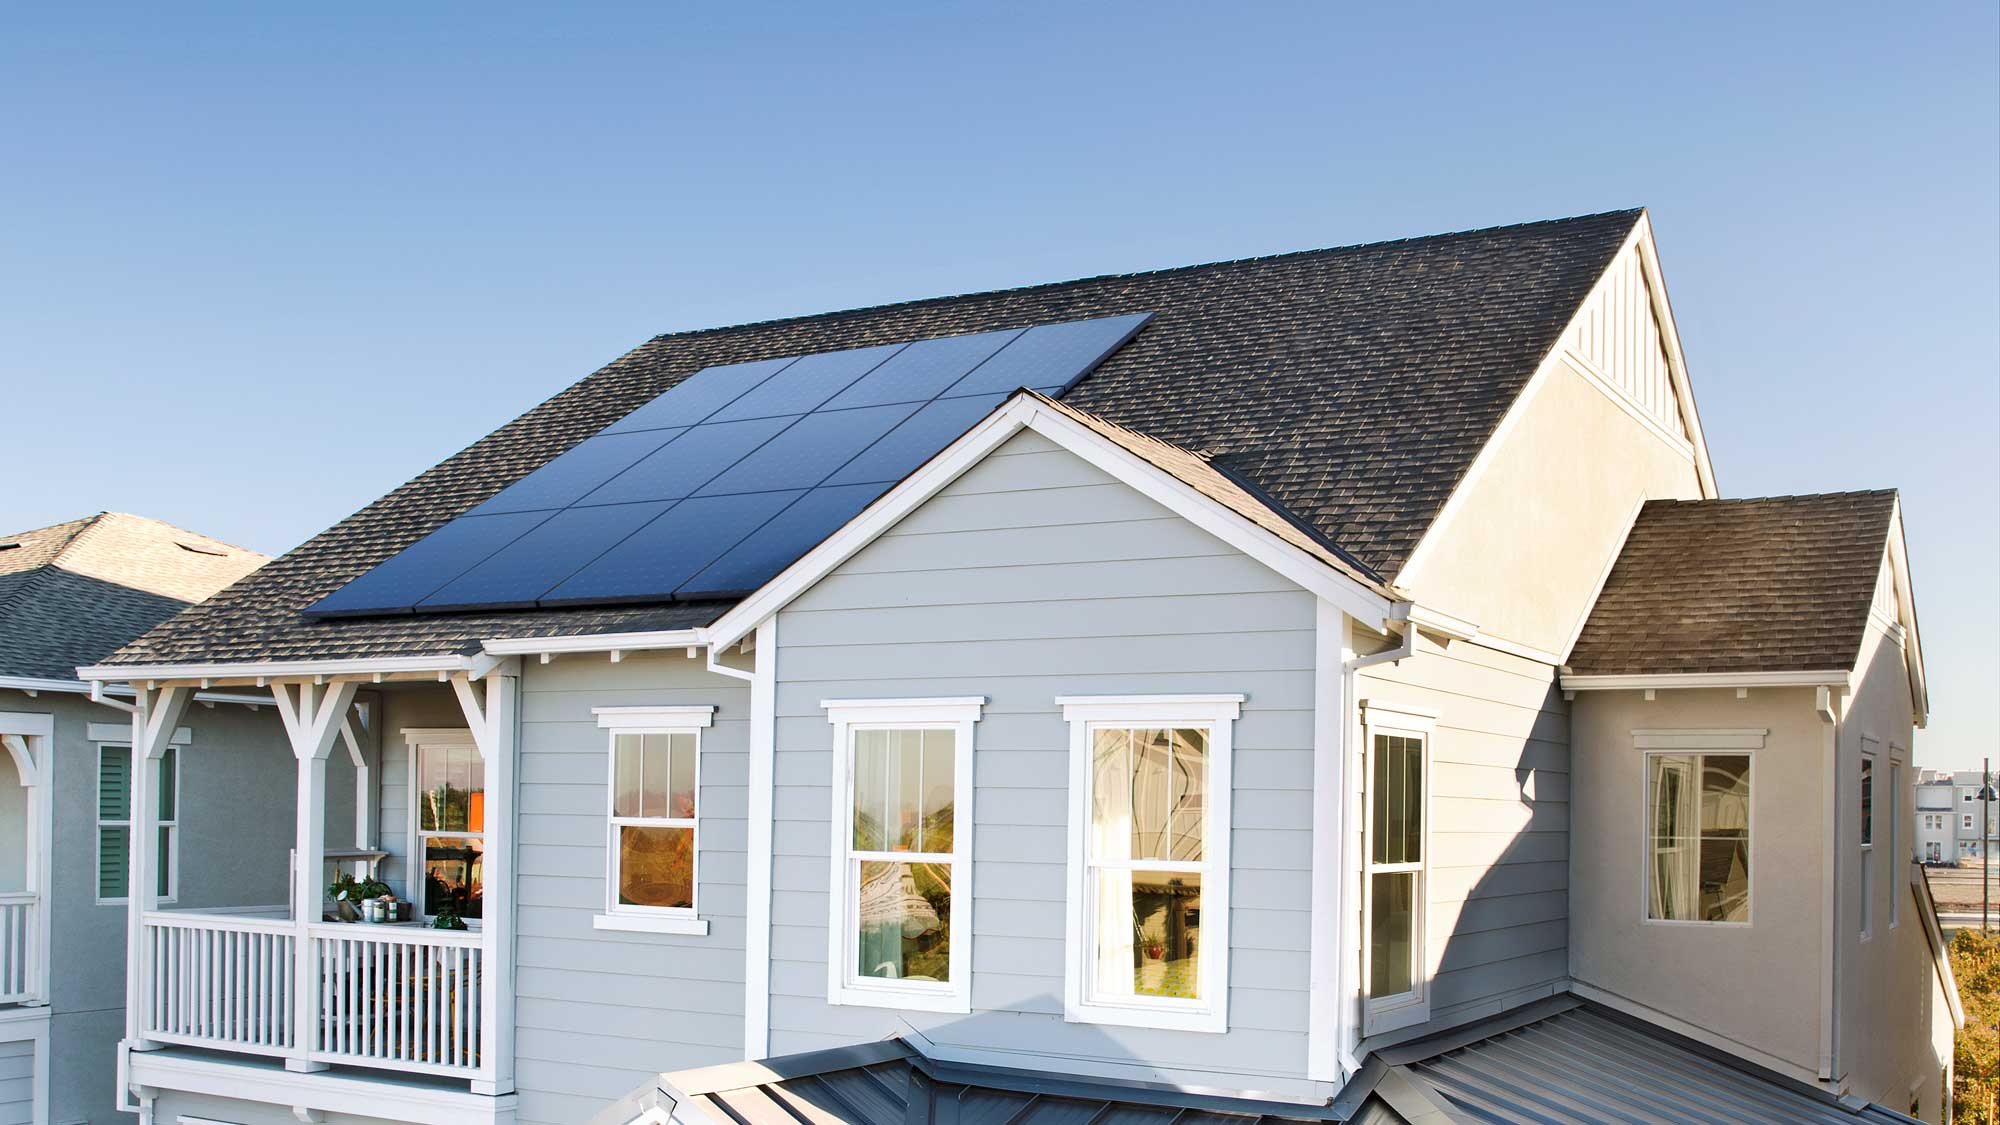 Contact our Solar Panel Company in the North Valley